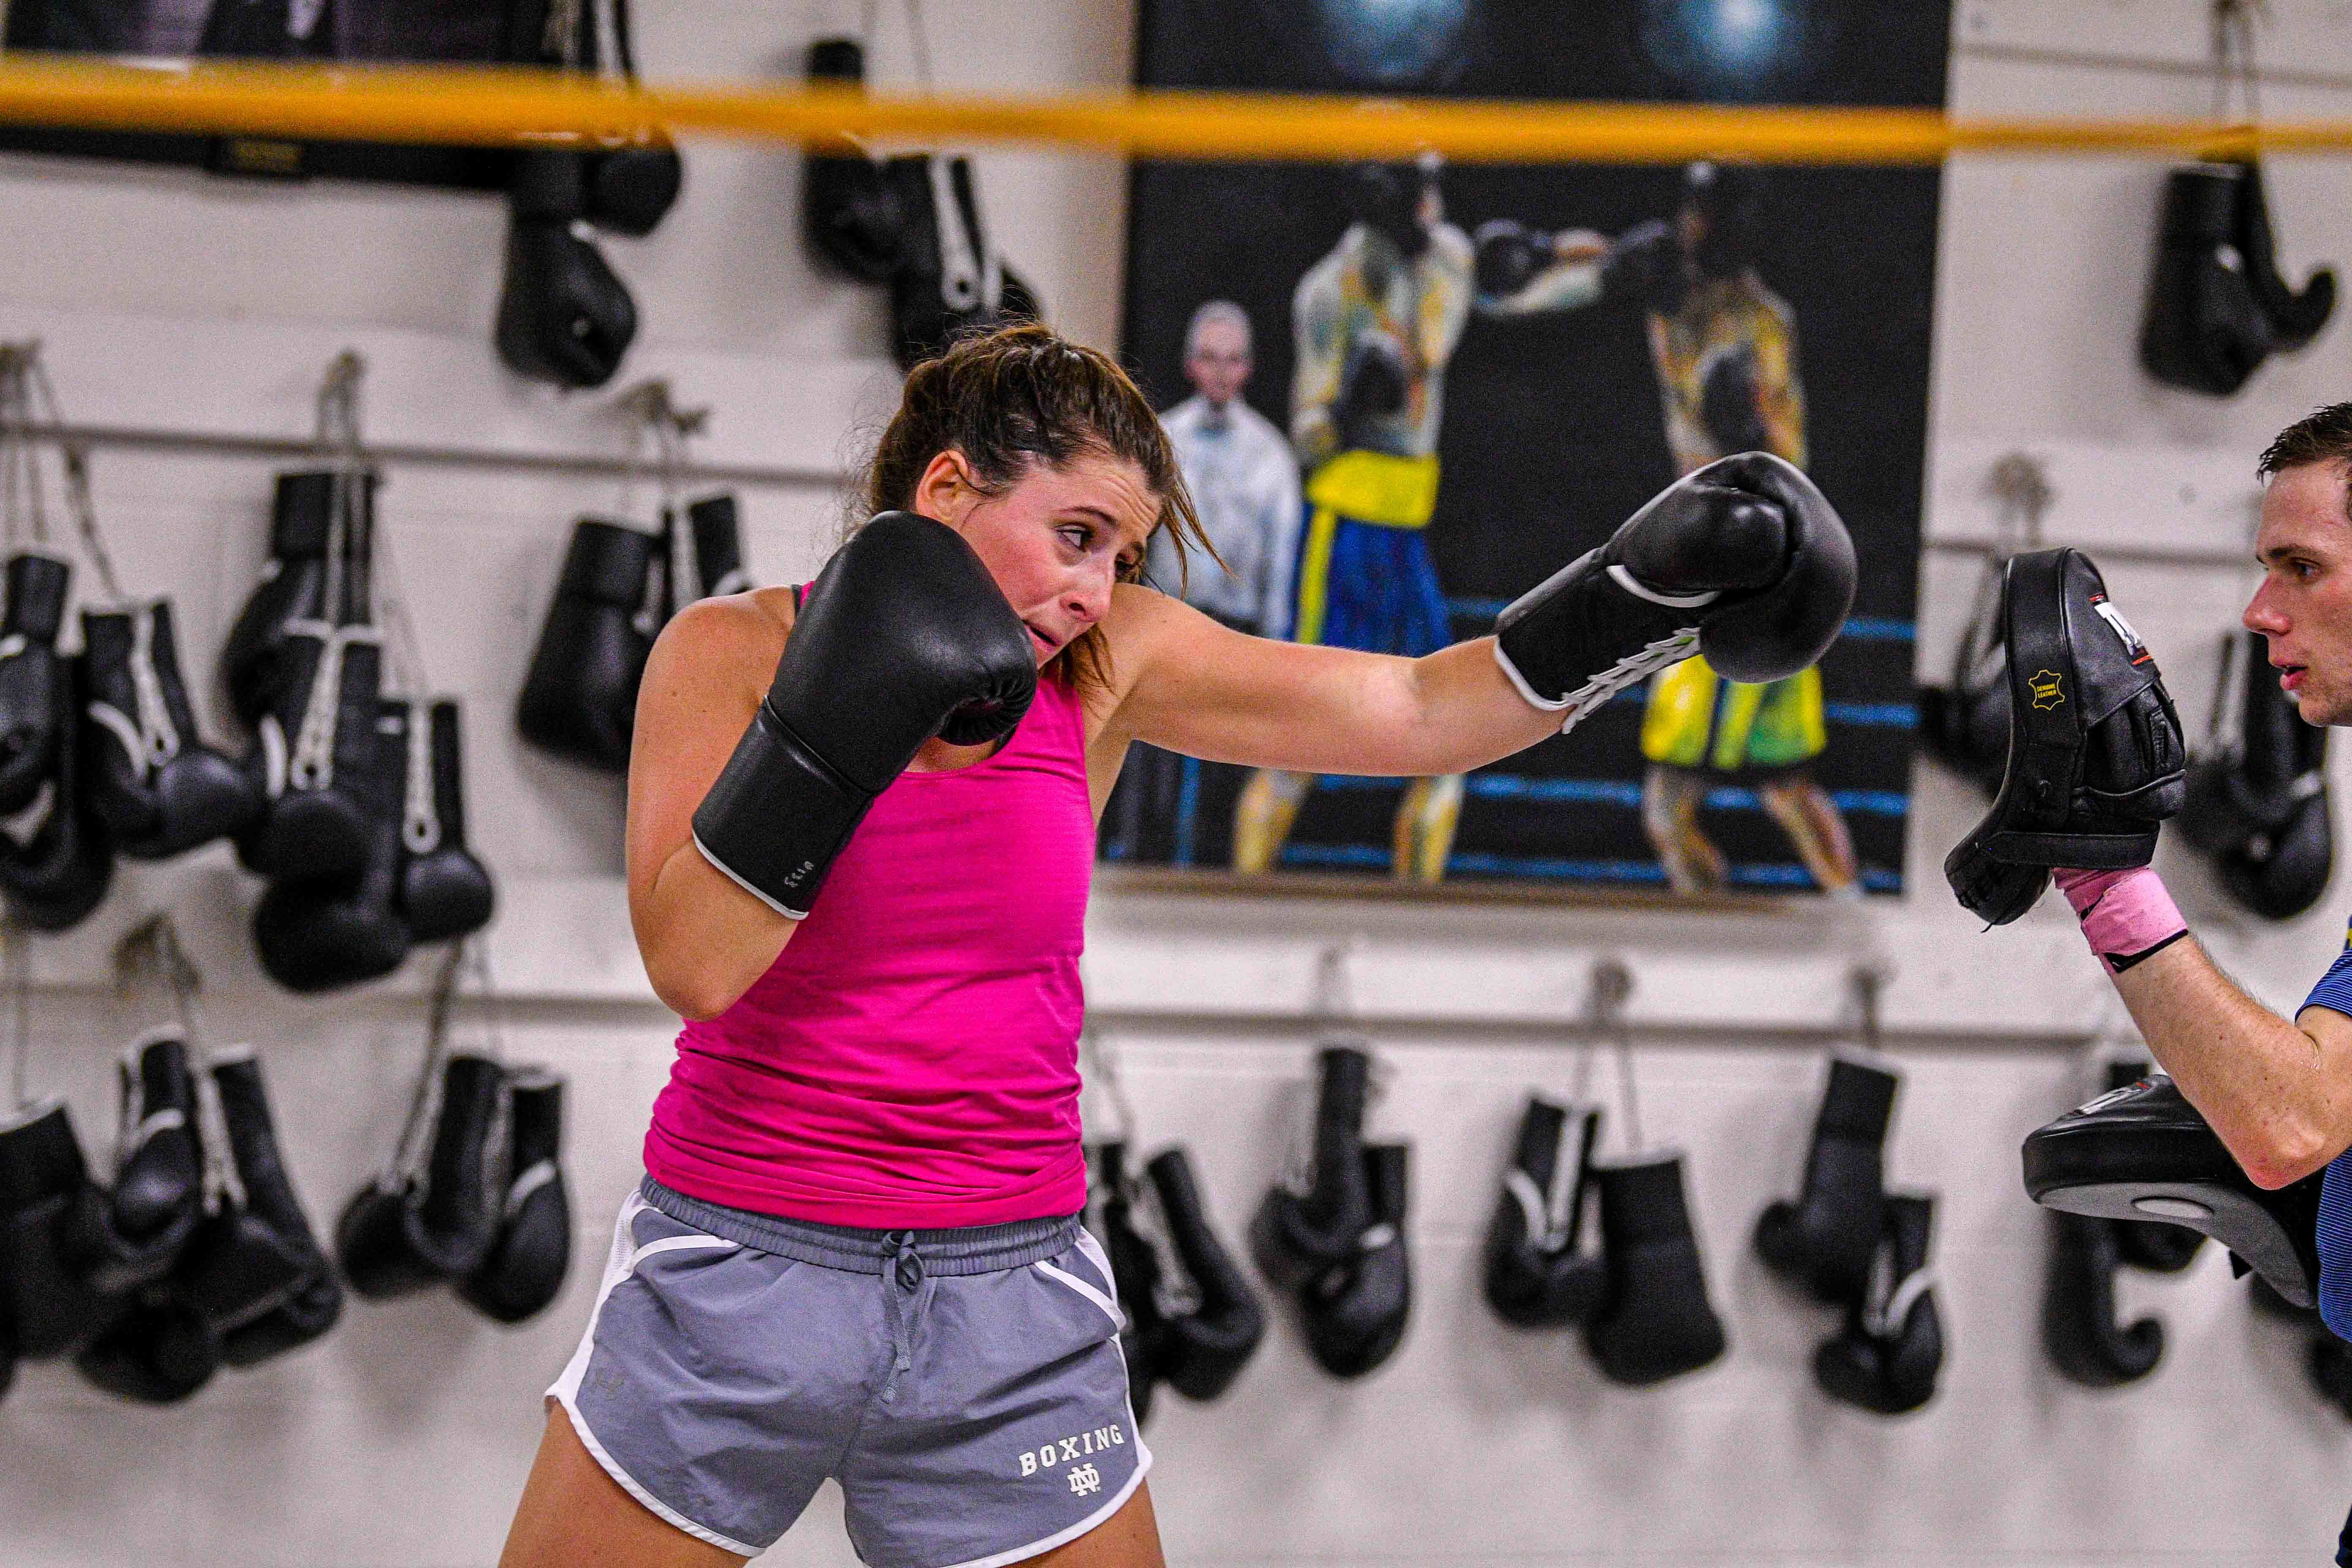 Captain alexis driscoll perfecting her jab